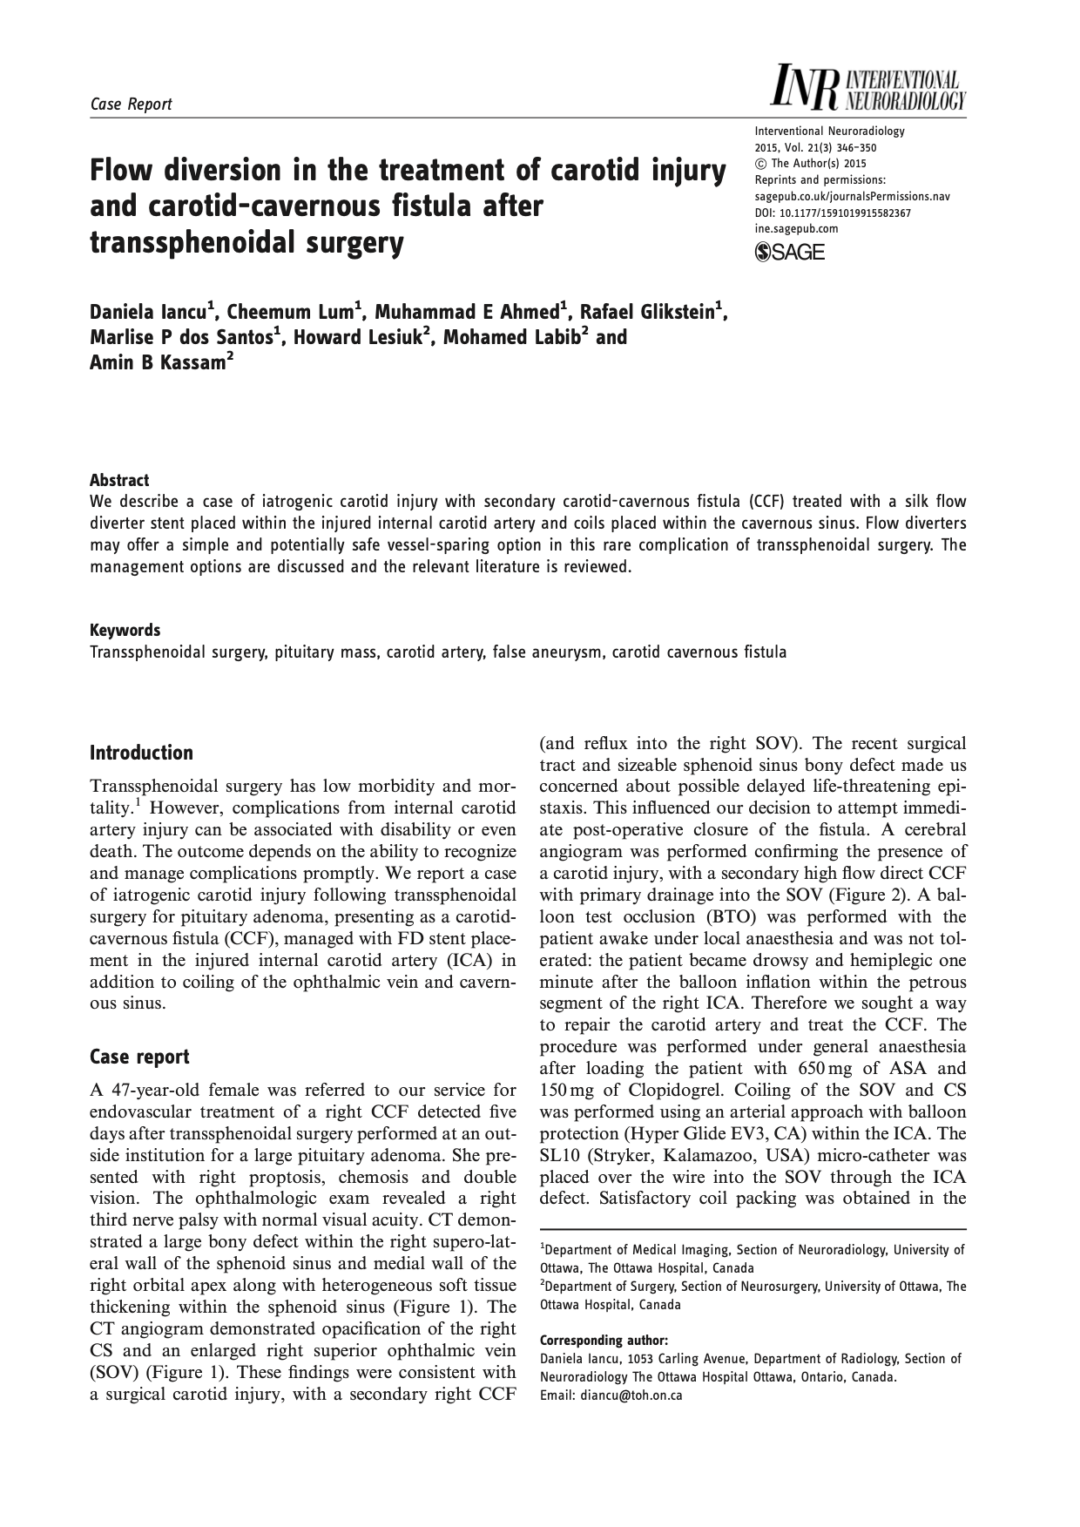 Flow diversion in the treatment of carotid injury and carotid-cavernous fistula after transsphenoidal surgery